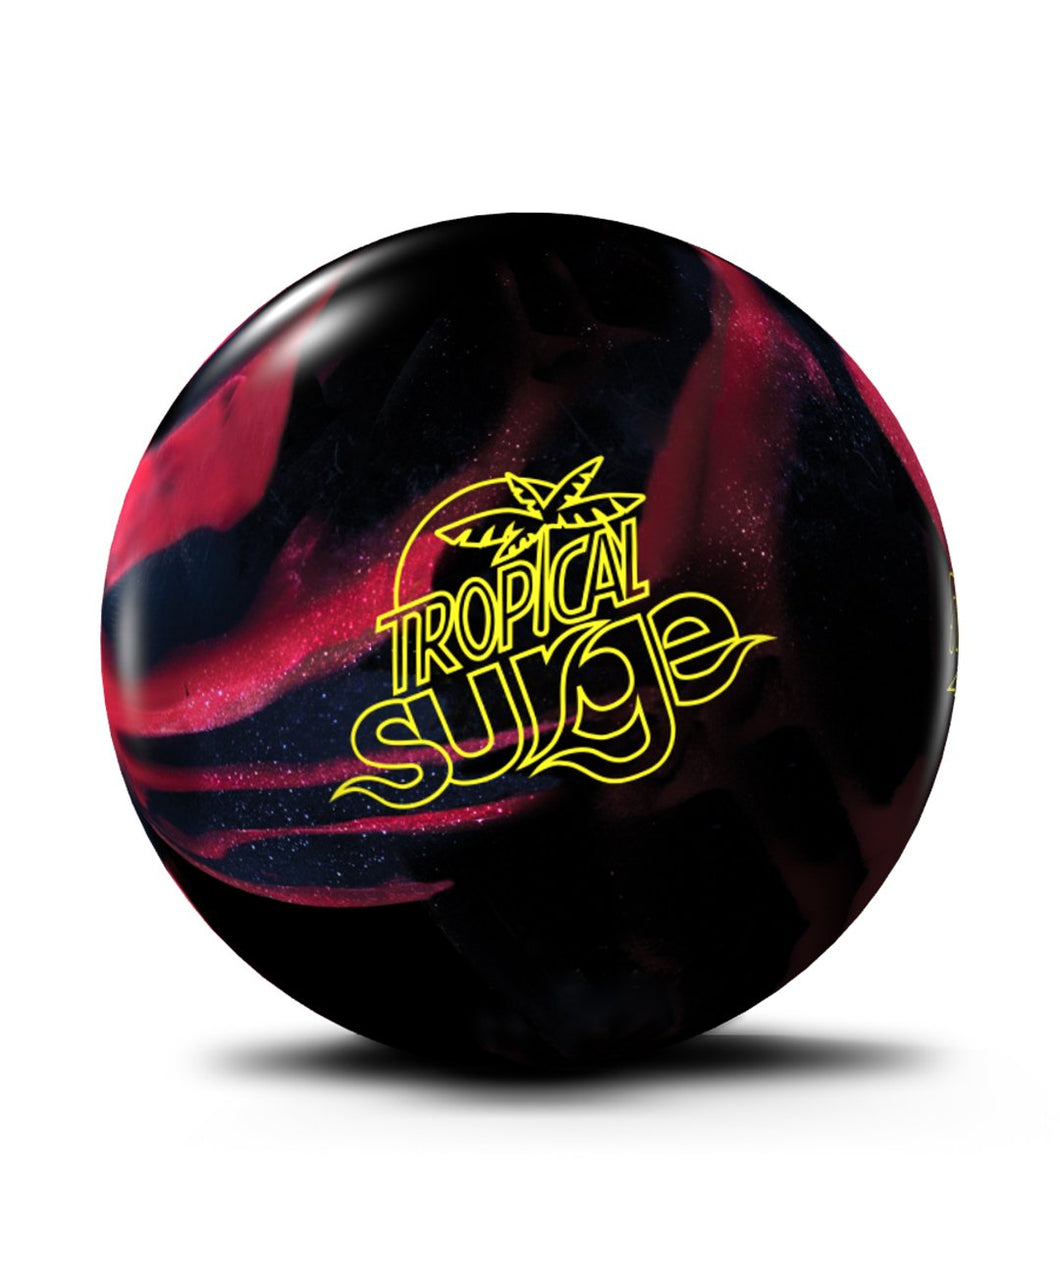 Storm Bowling TROPICAL SURGE (Black/Cherry)